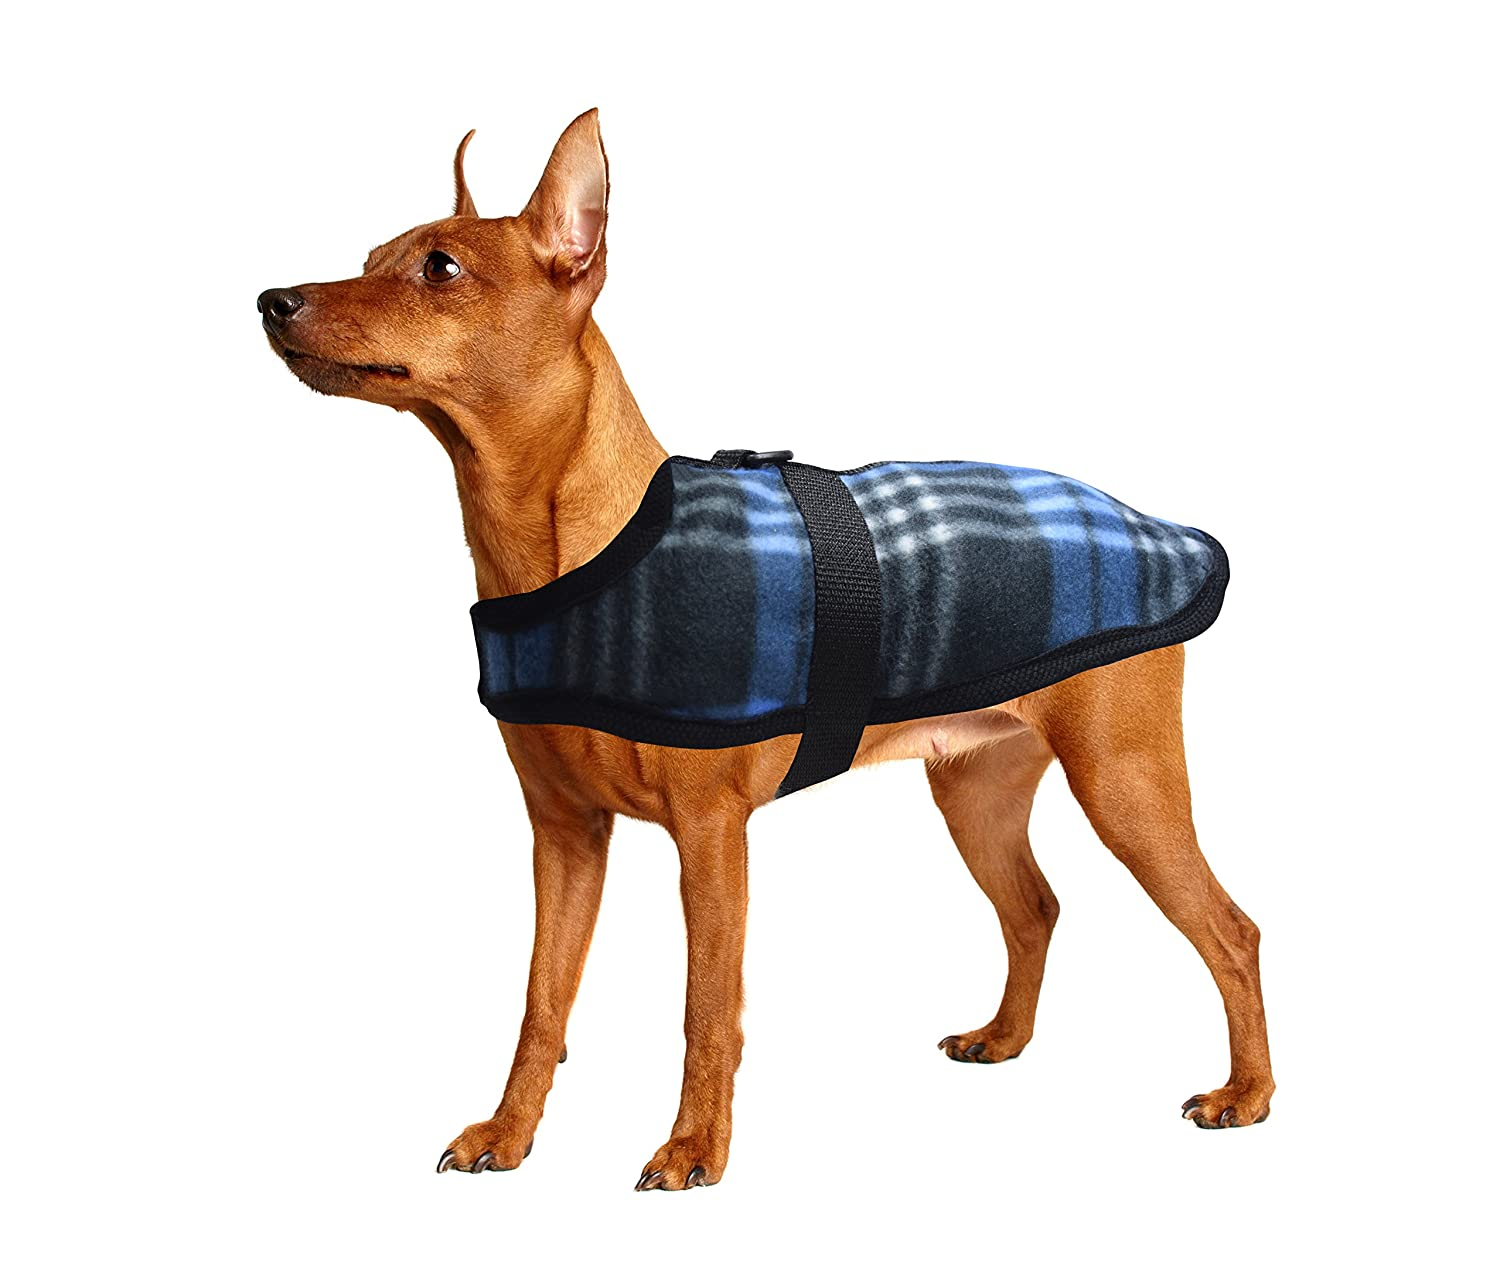 bluee XX-Small bluee XX-Small All Seasons Puppy Fleece Jacket for Toy Dogs and Puppies for Outfits for Boy Dogs (2X Small bluee)